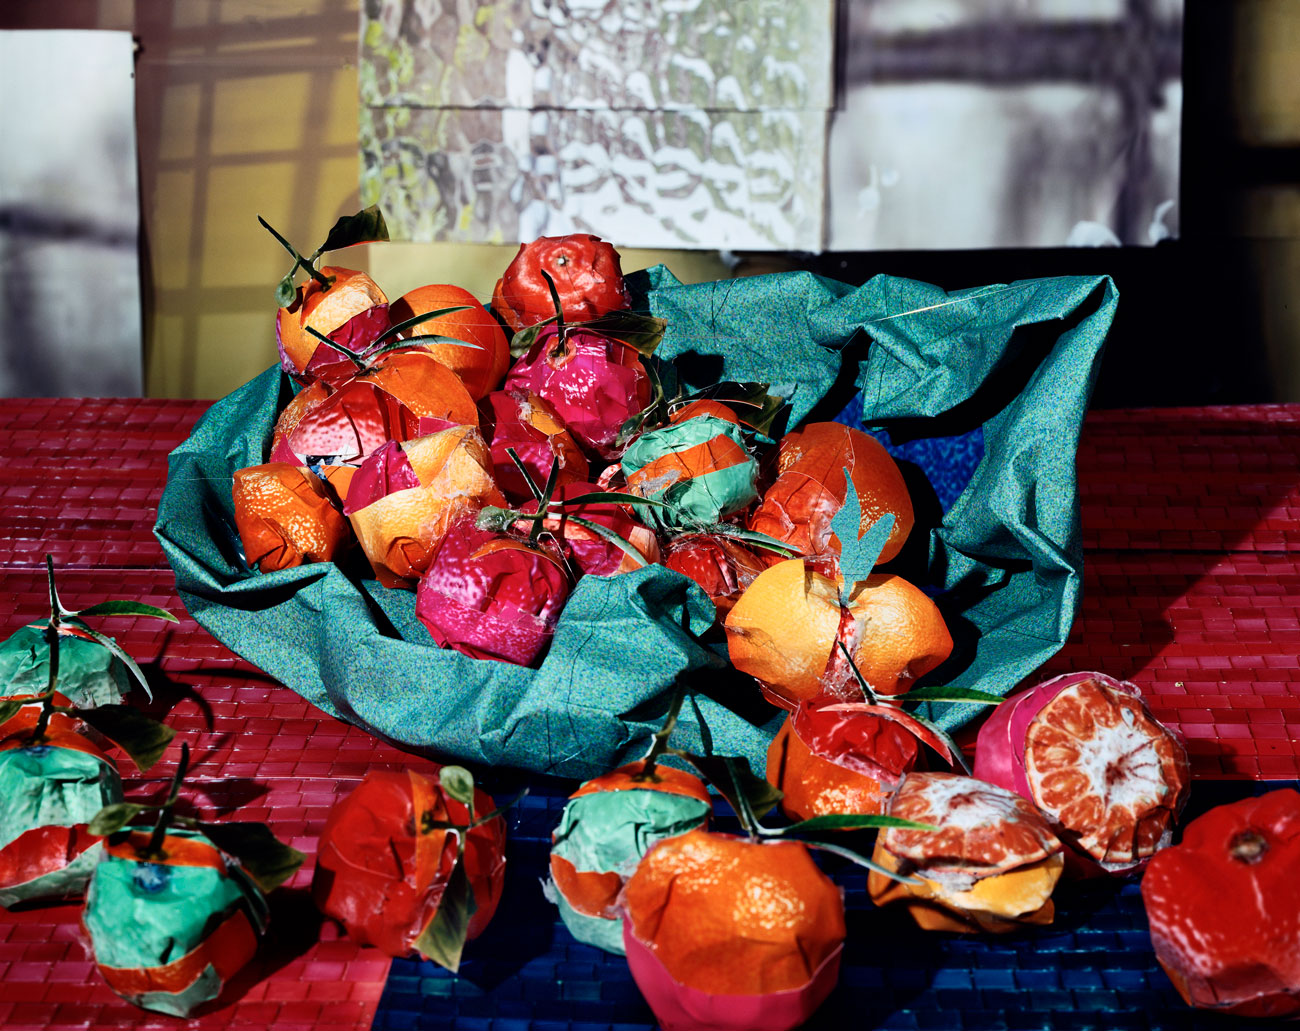 A photo illustration that appears to show a bowl of bright oranges, but on closer inspection, each object is made of crumpled and wrapped photos.